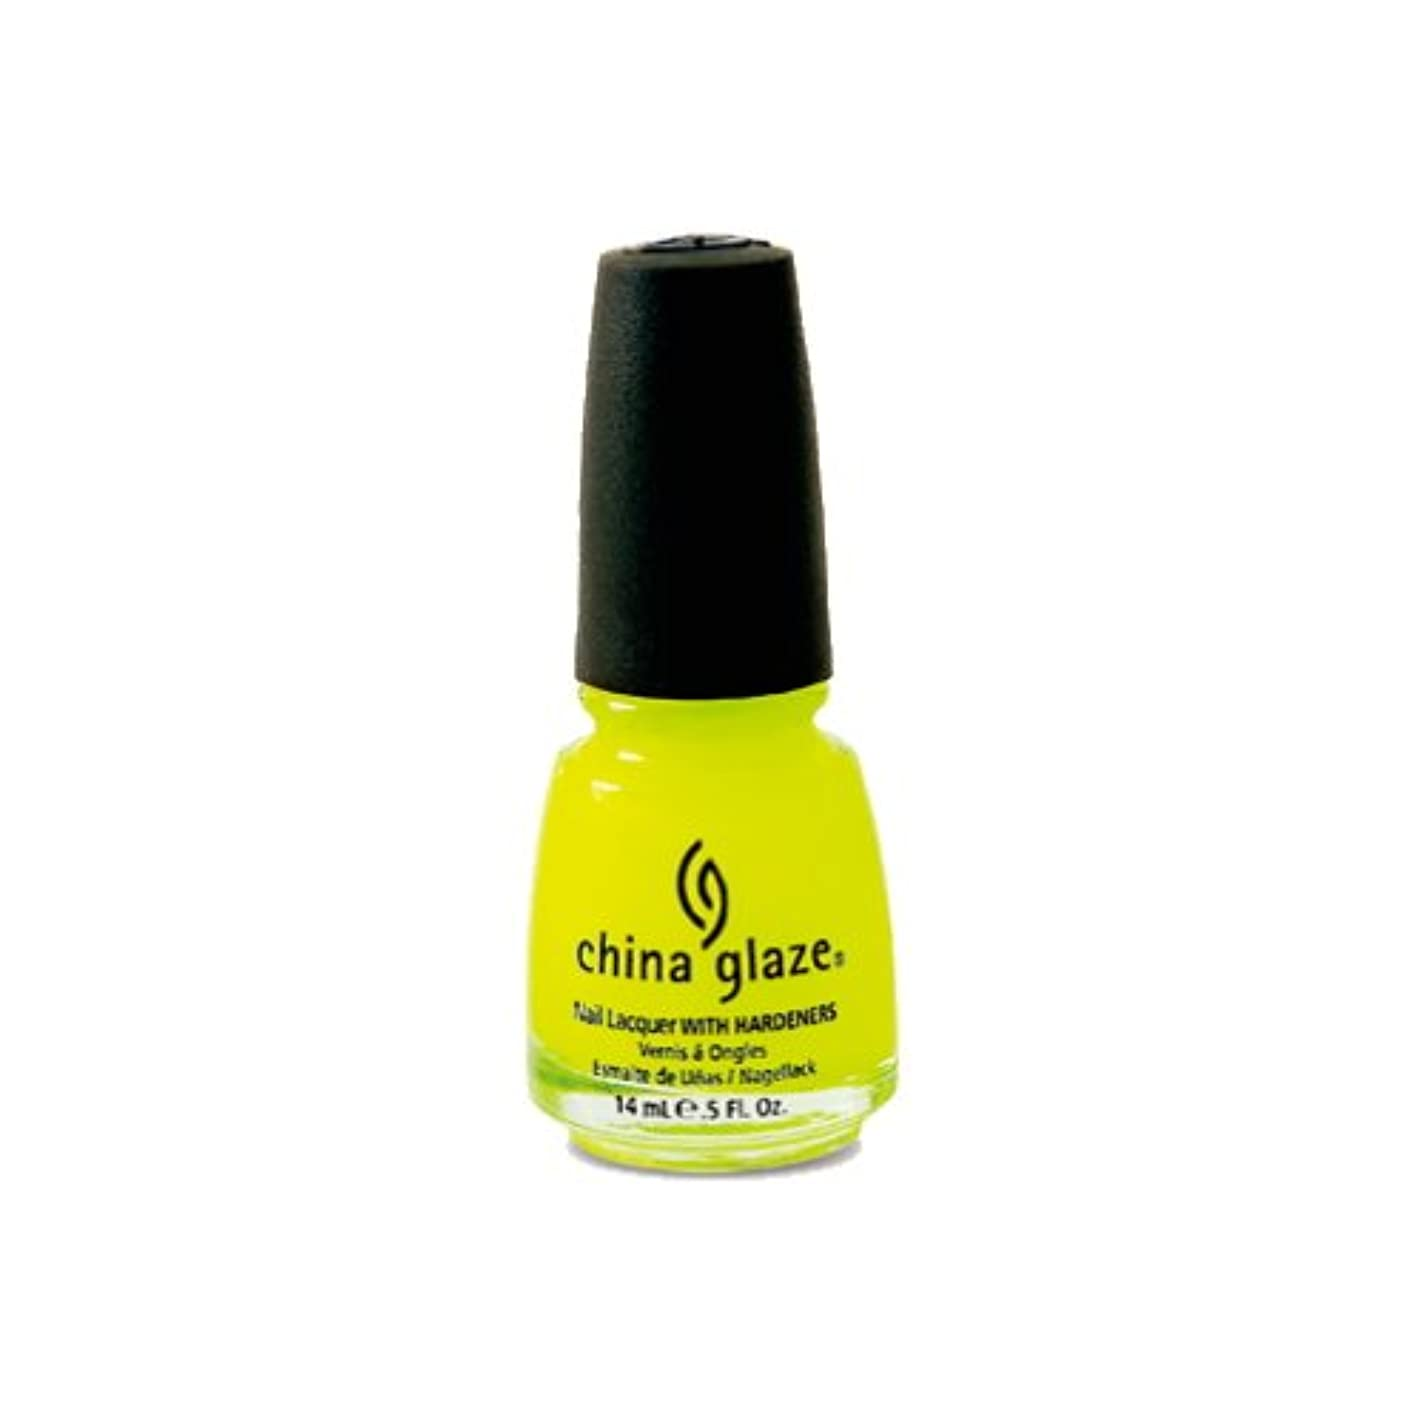 クラシックペルソナ精緻化CHINA GLAZE Nail Lacquer with Nail Hardner 2 - Celtic Sun (並行輸入品)